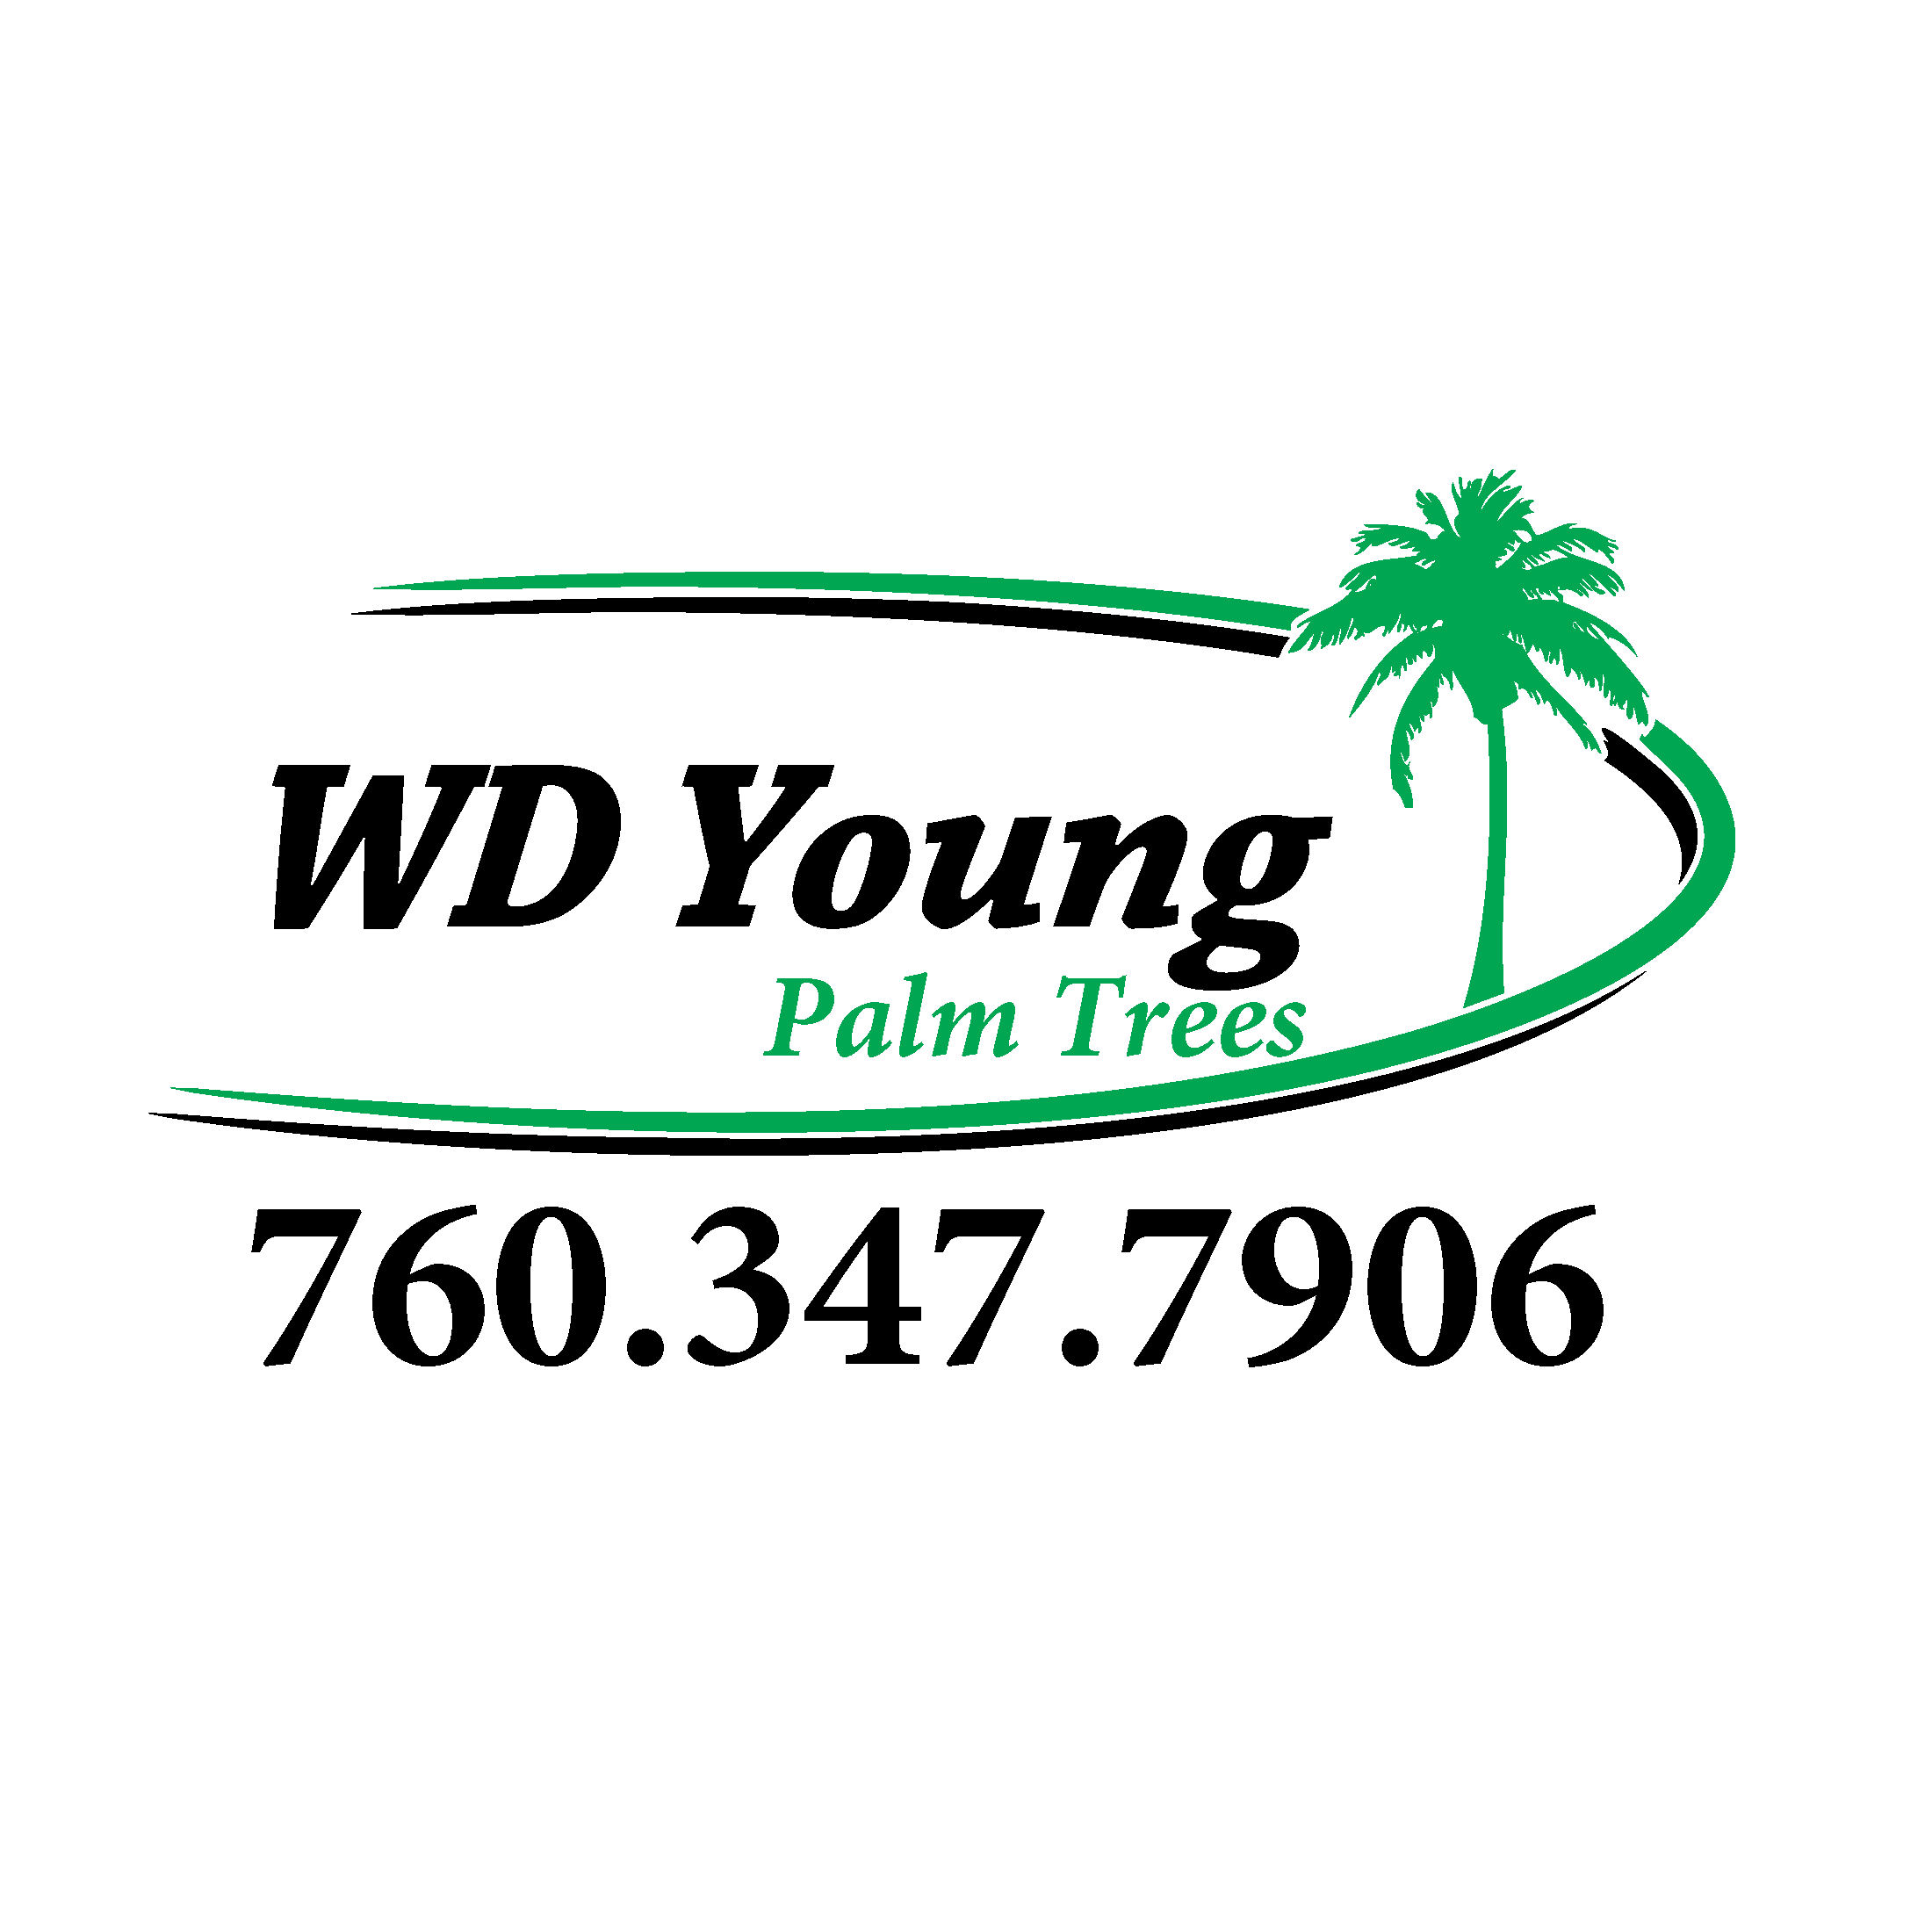 WD Young Palm Trees